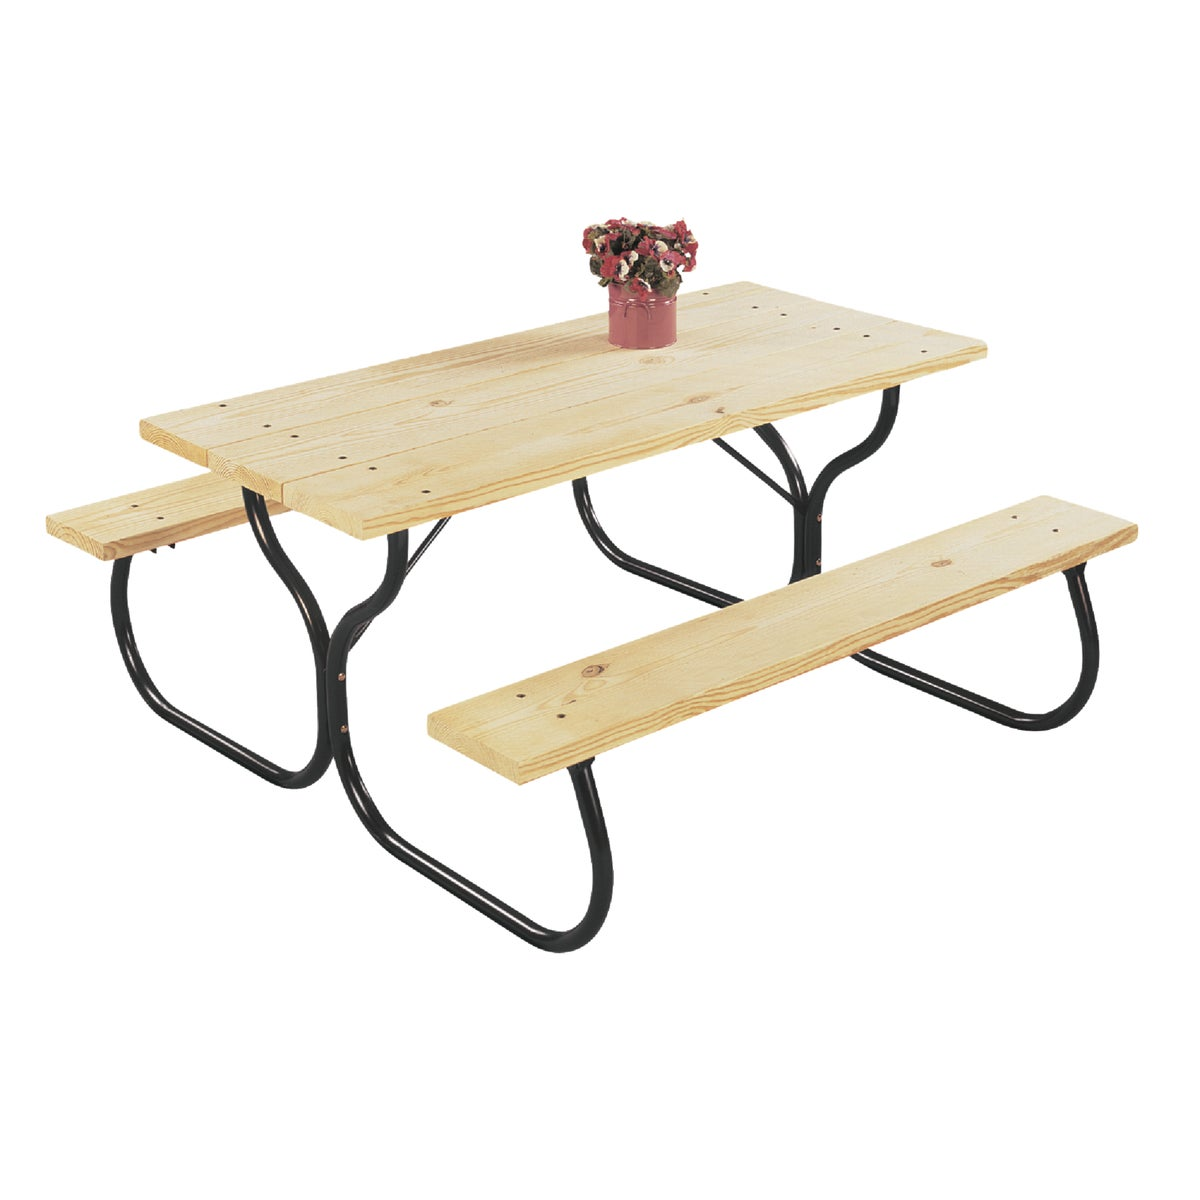 PICNIC TABLE FRAME - FC-30 by Jackpost  Shanghai B